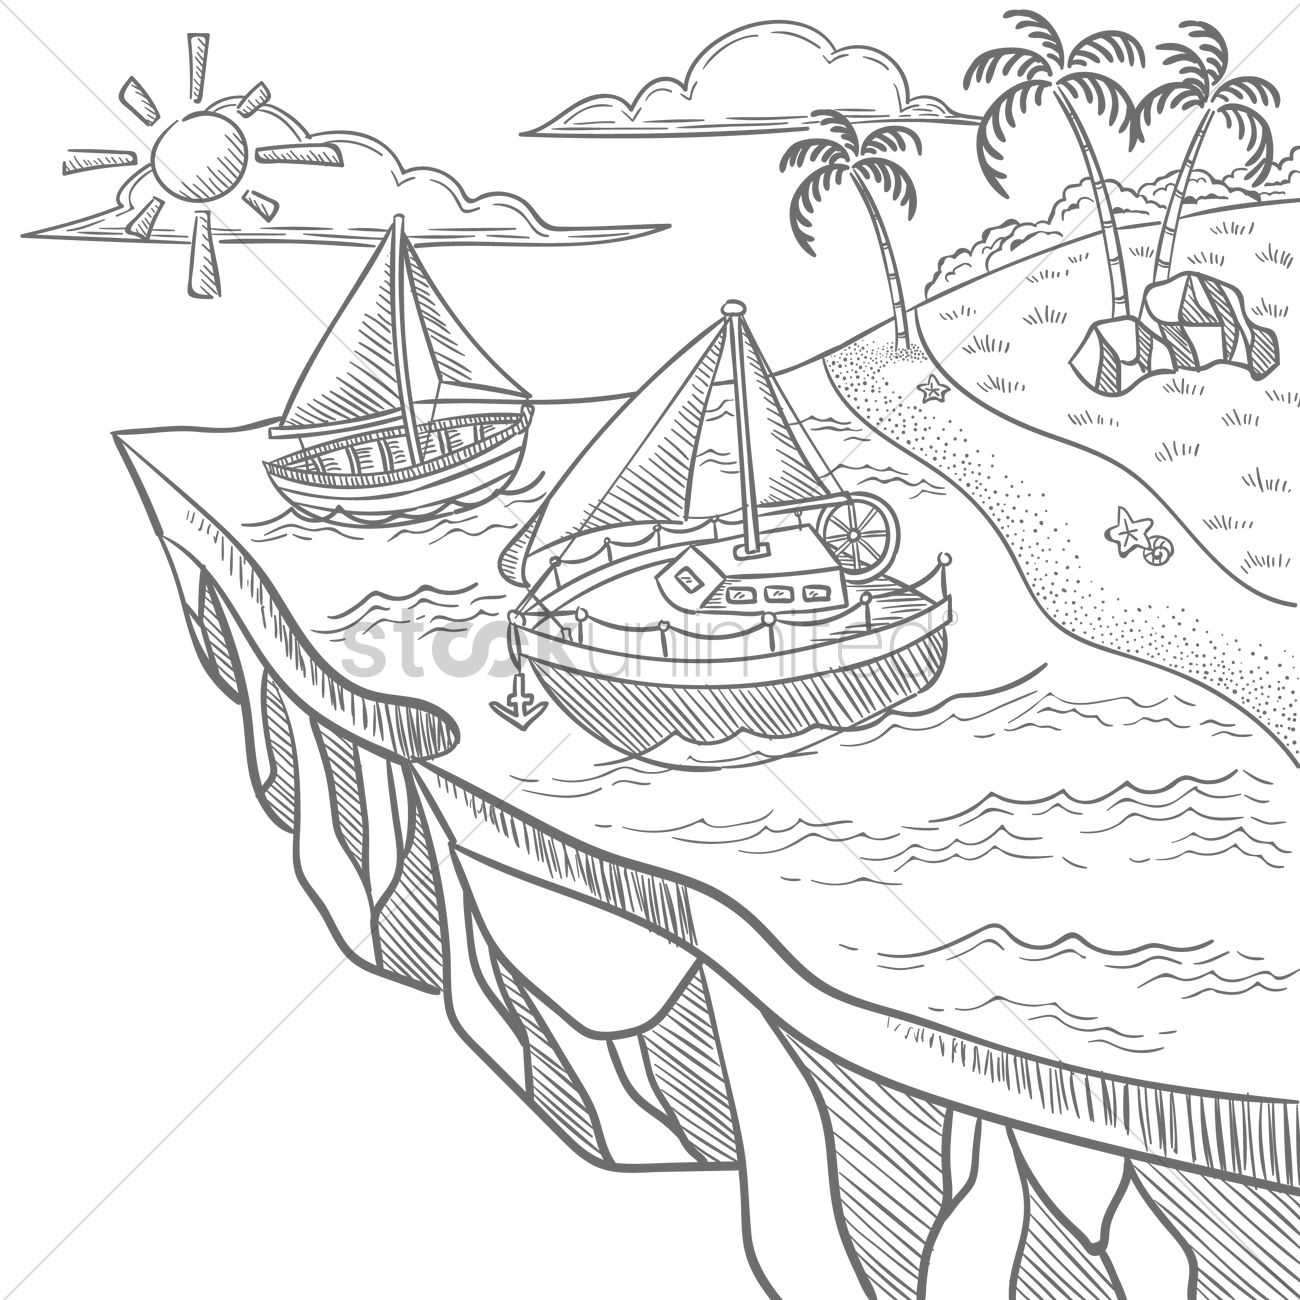 Floating Island coloring #17, Download drawings